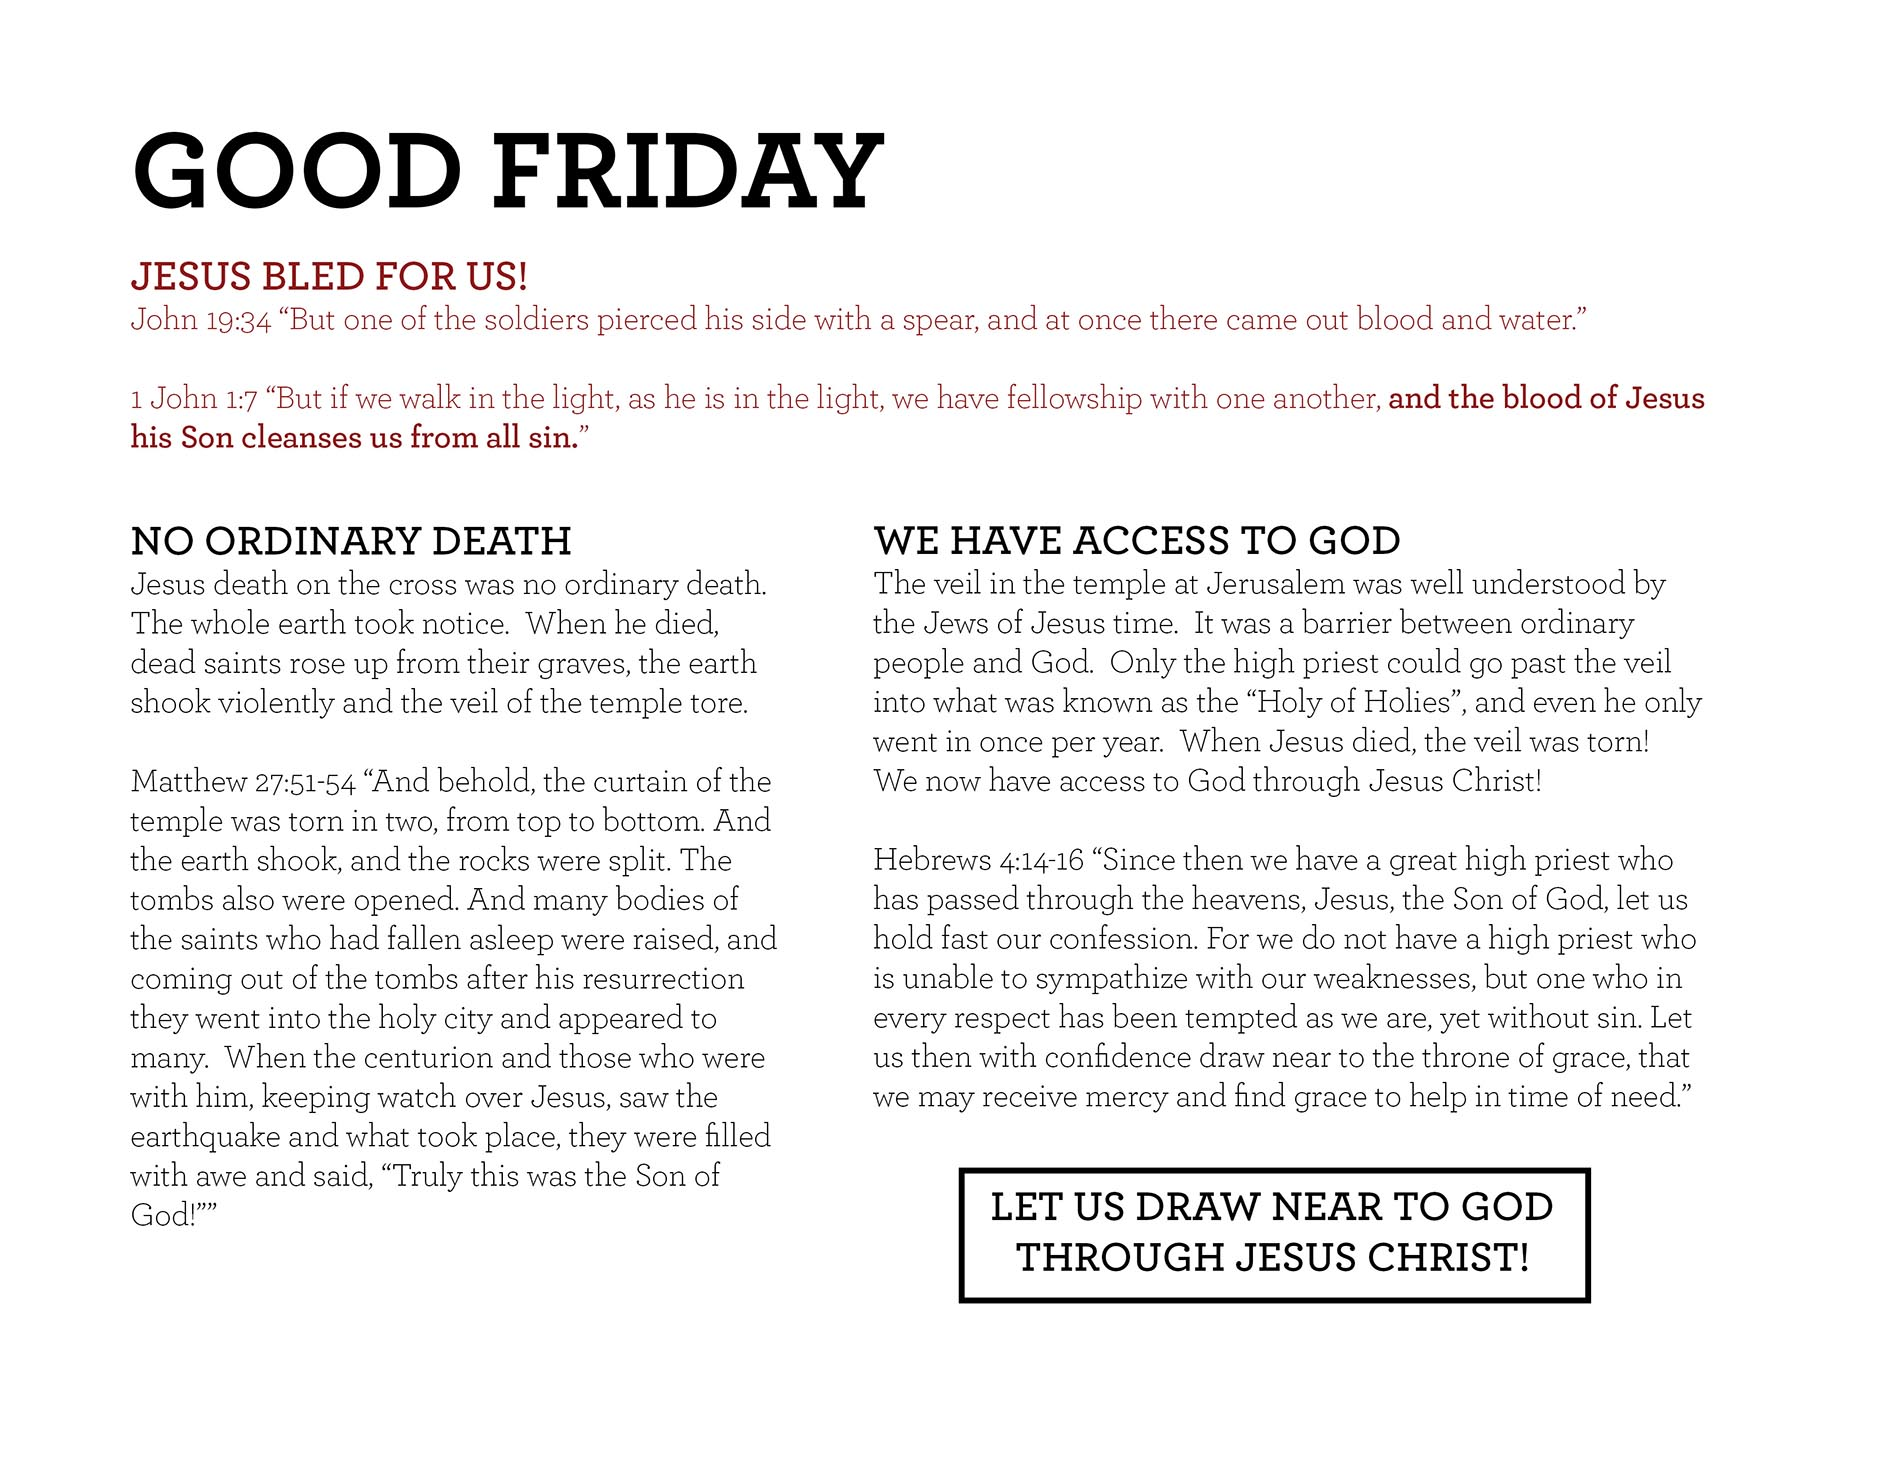 GOOD FRIDAY John 19:34